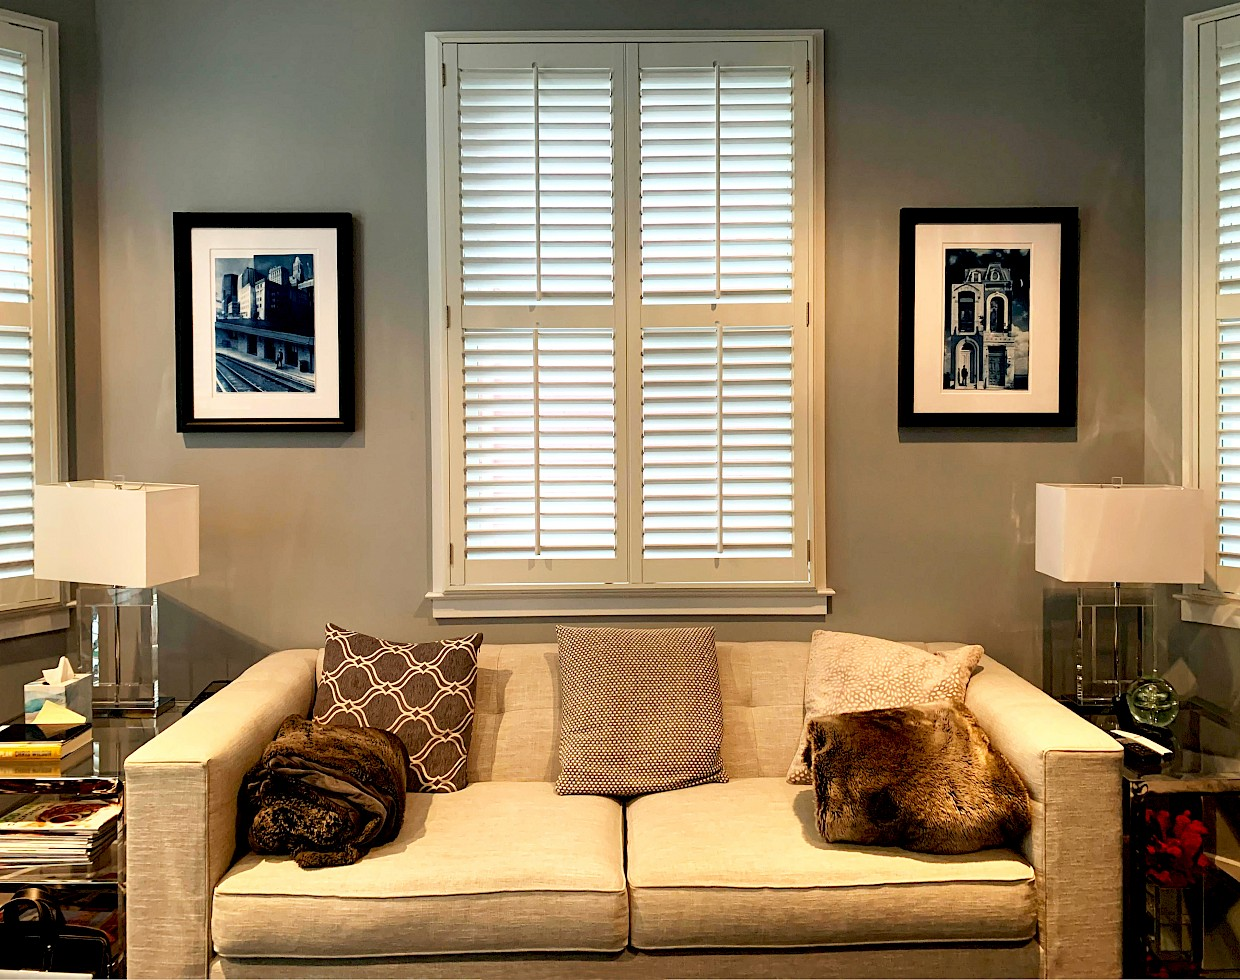 fine art cyanotype prints in living room space